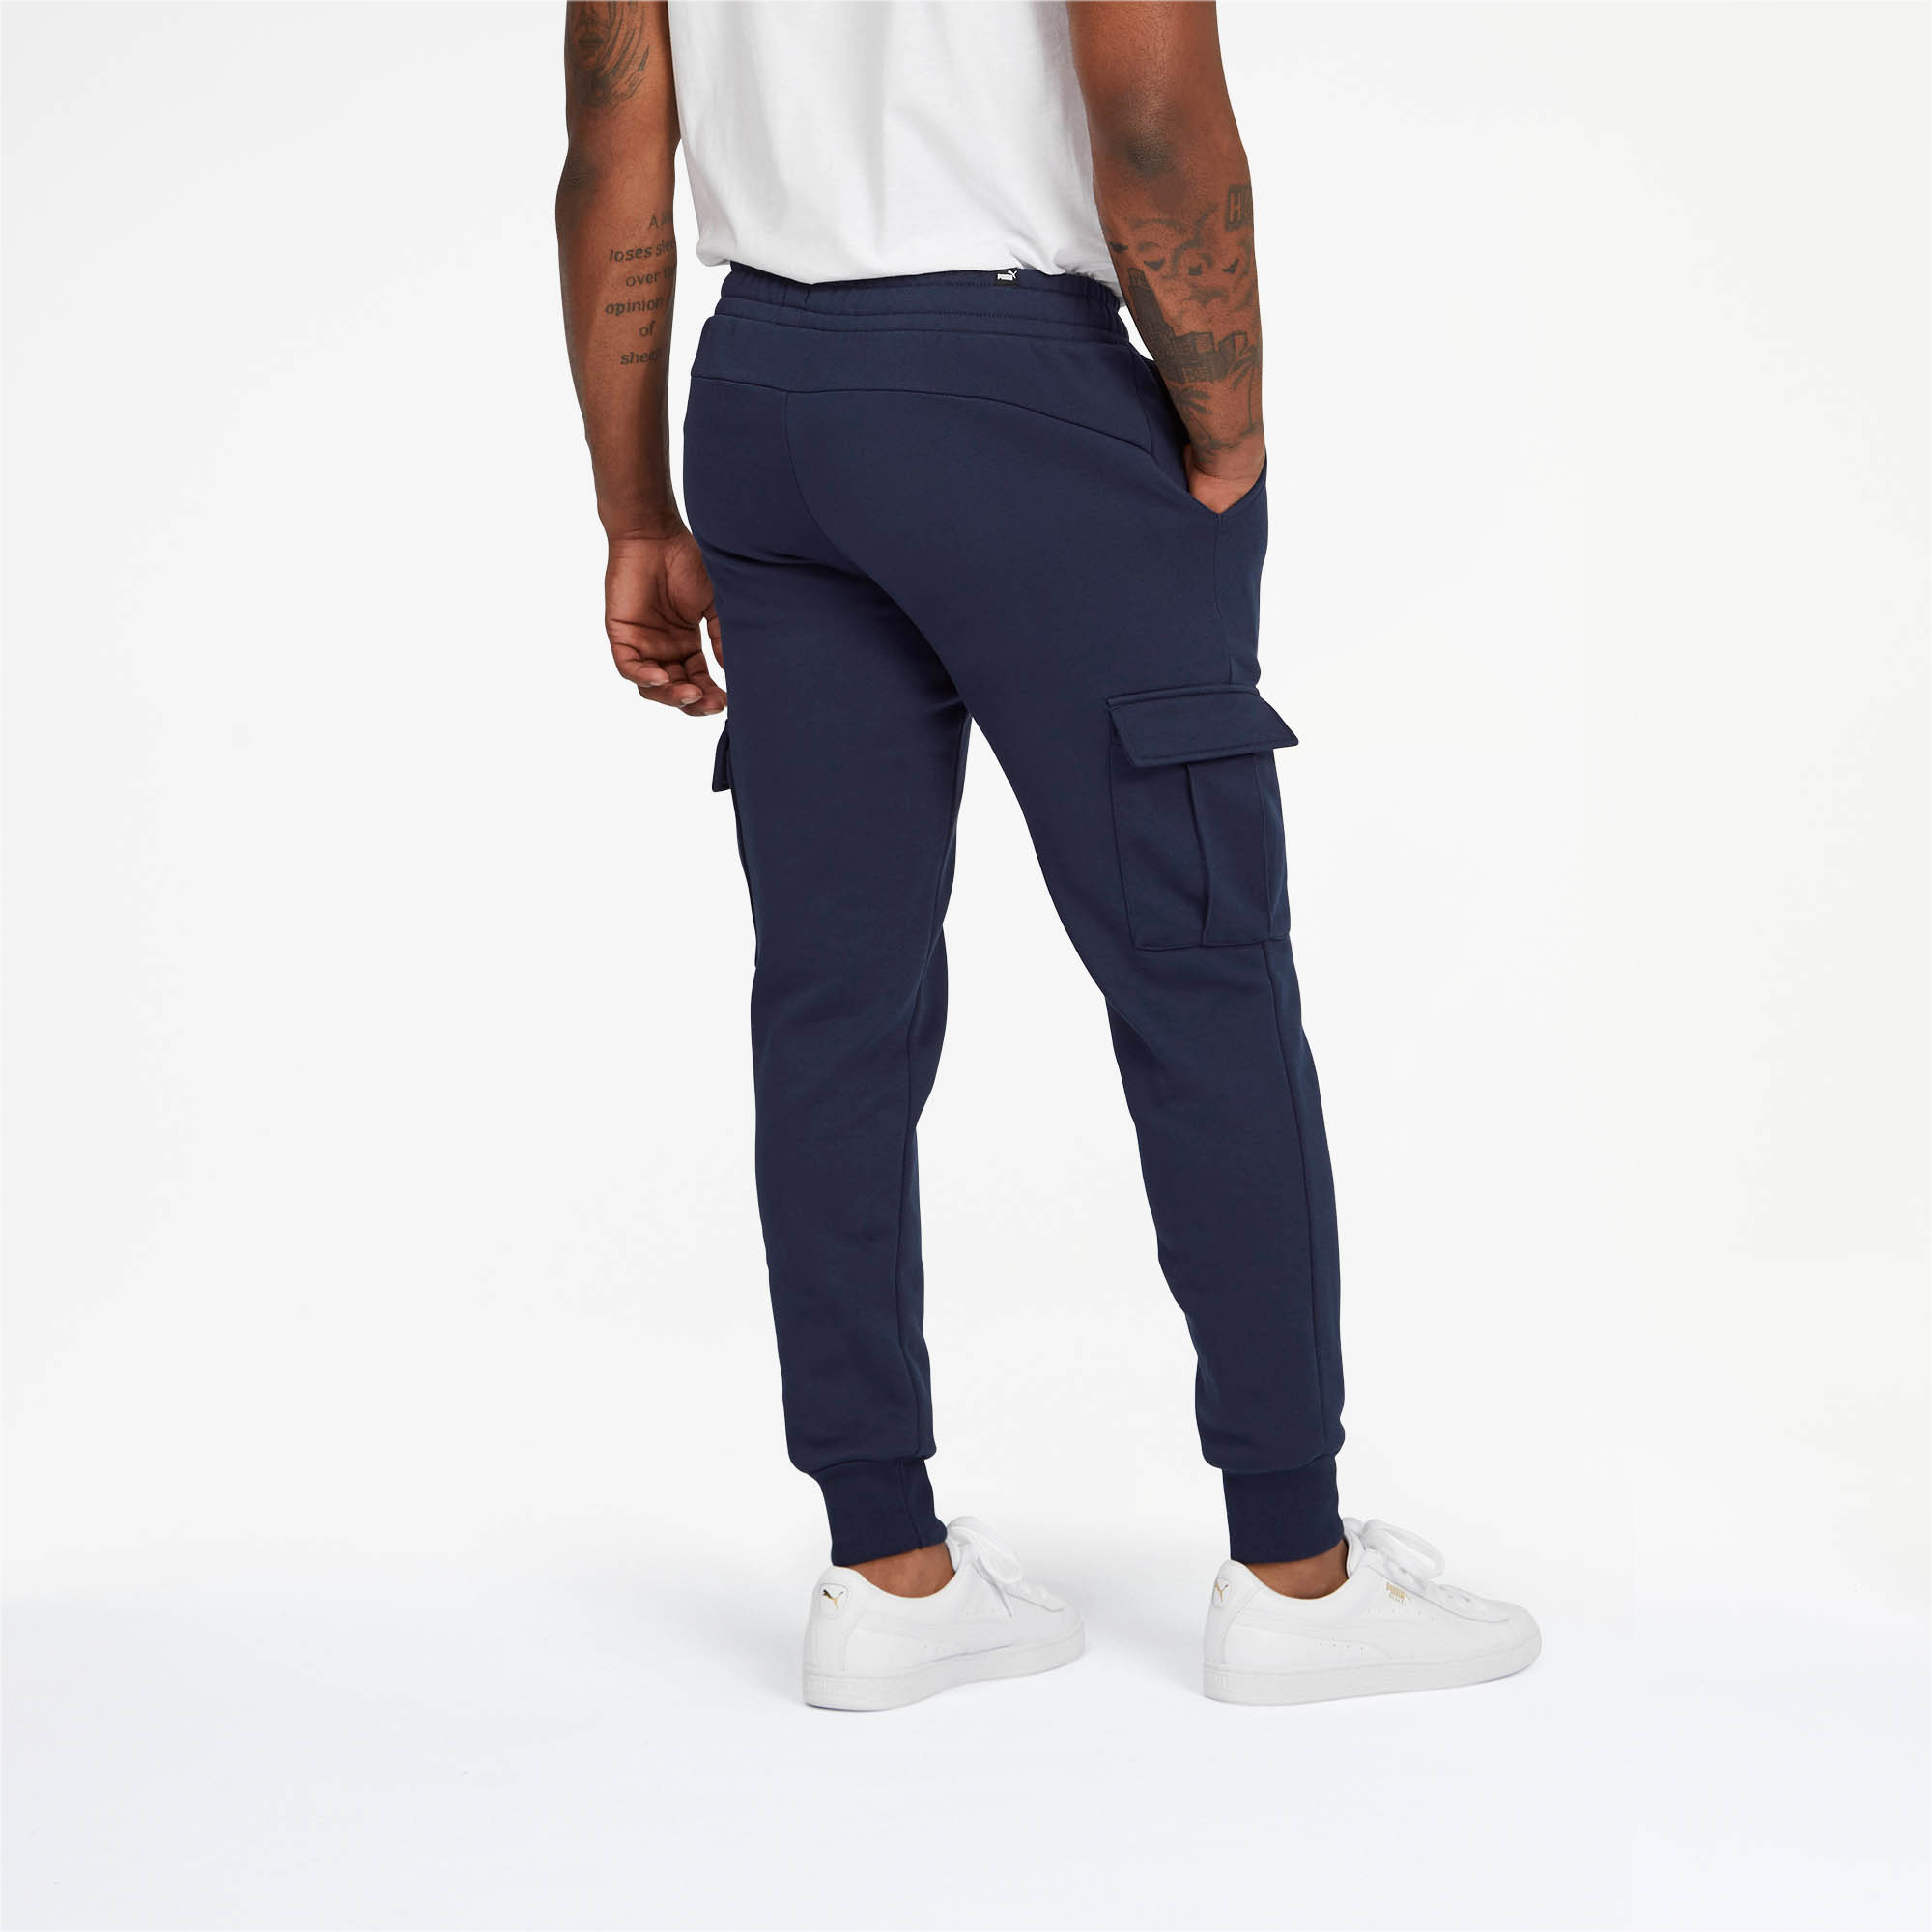 PUMA-Essentials-Men-039-s-Pocket-Pants-Men-Knitted-Pants-Basics thumbnail 10